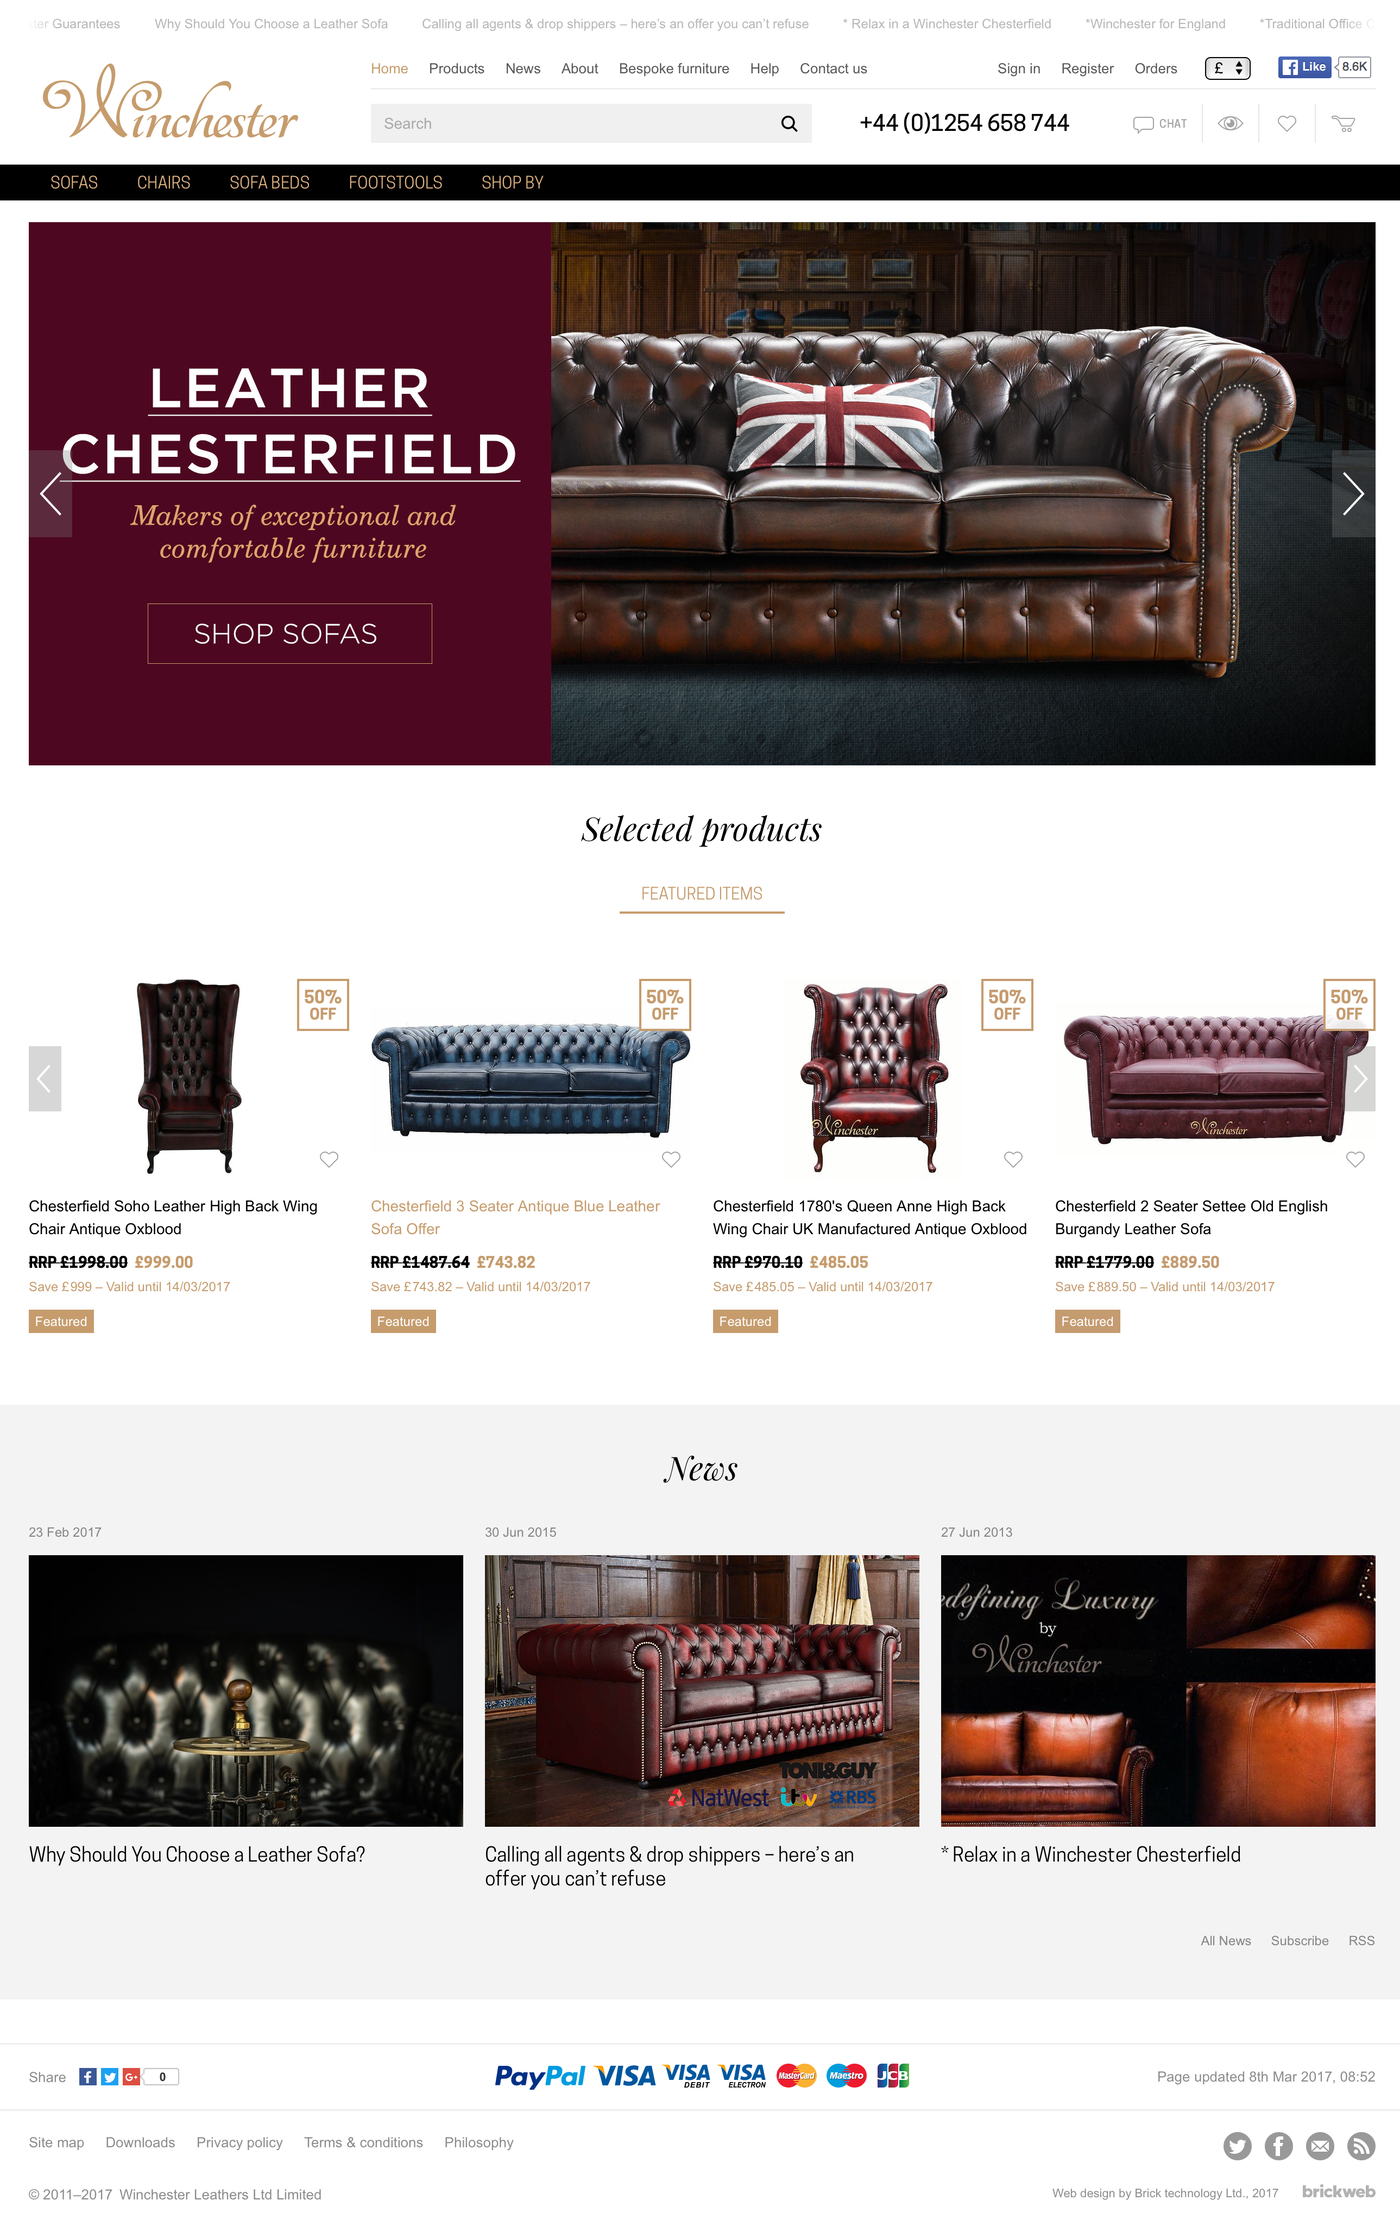 Winchester Leathers Ltd Home page